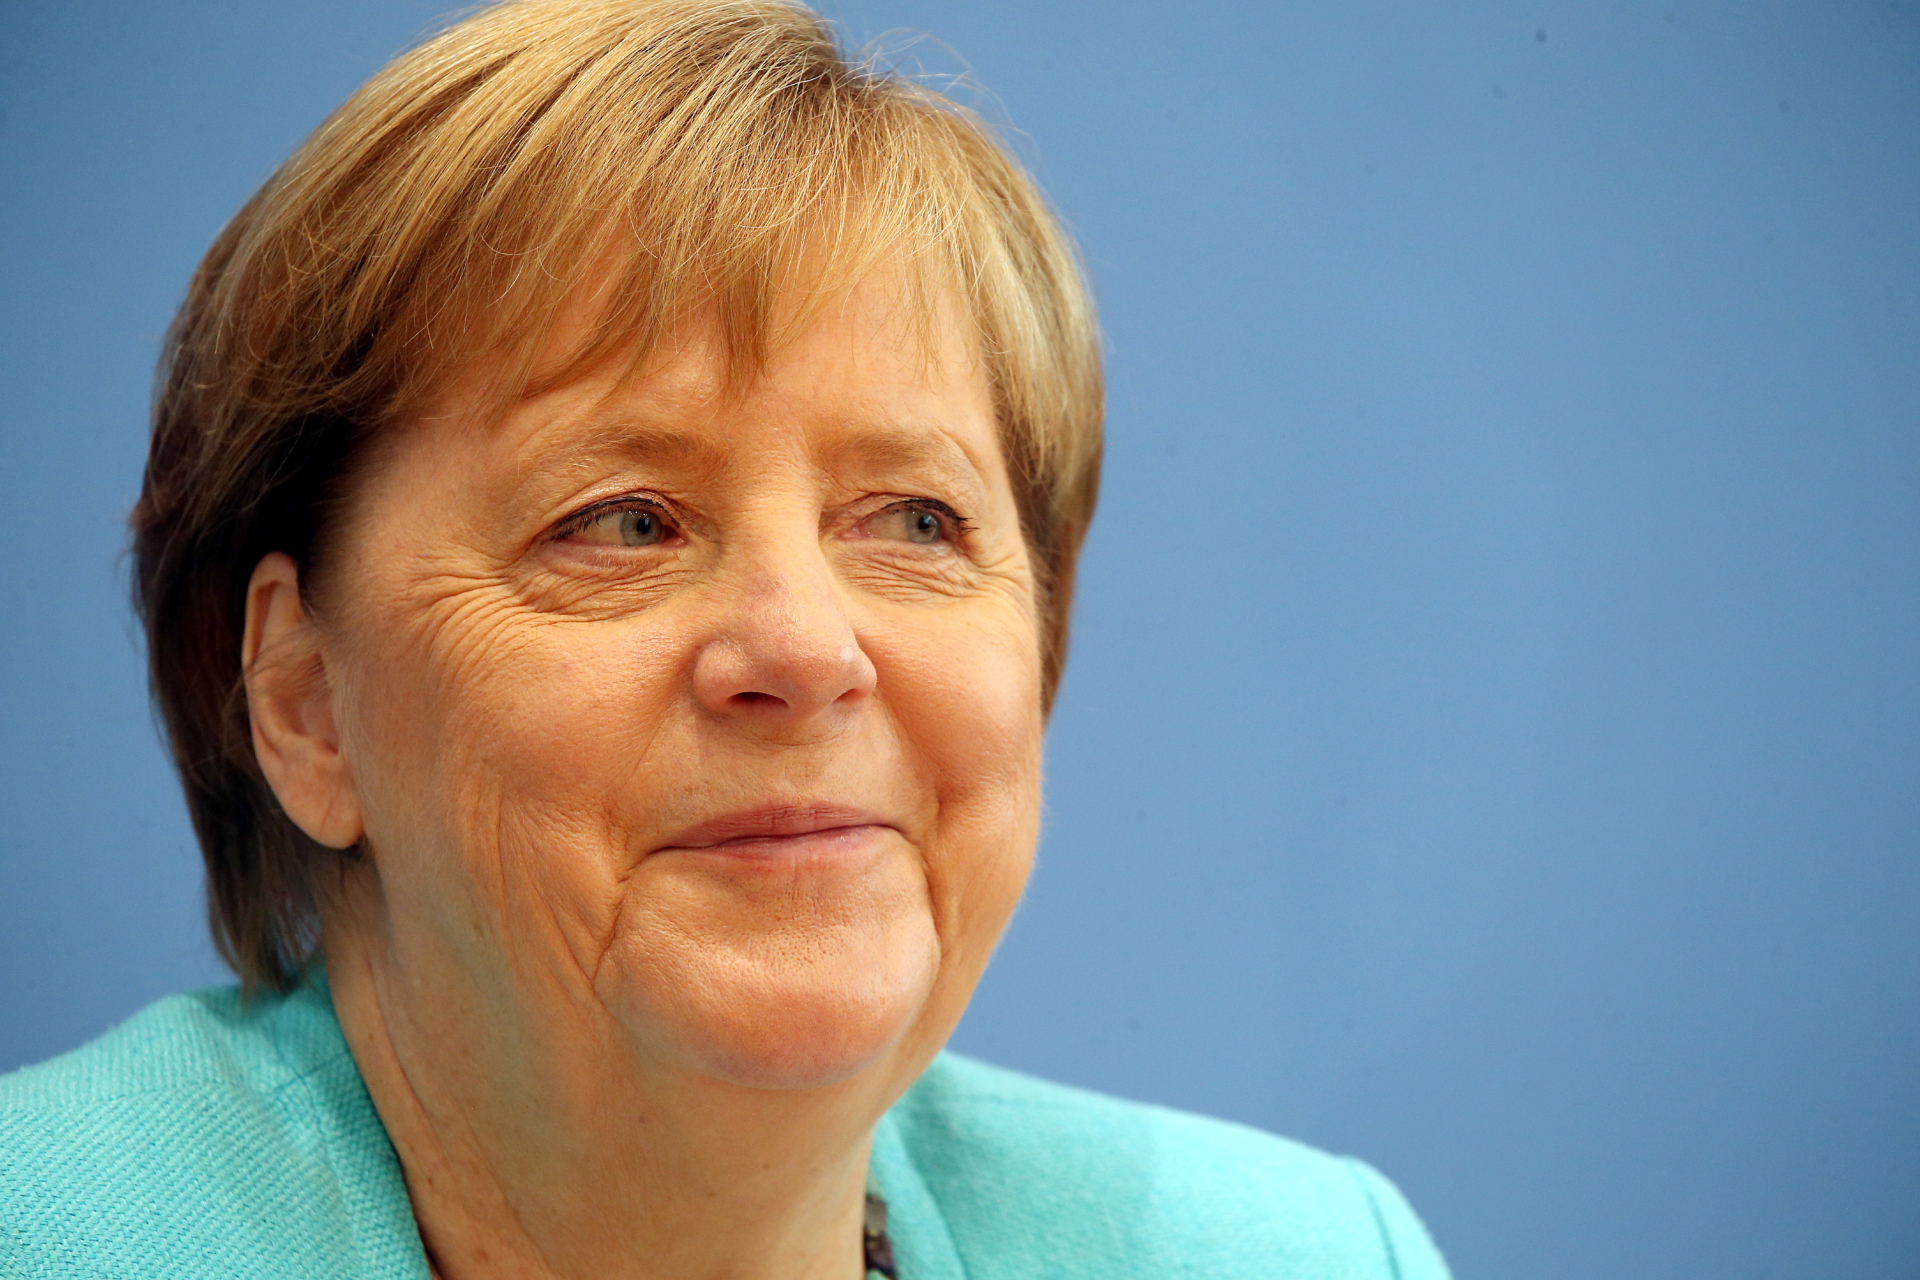 10 things you may not know about Angela Merkel